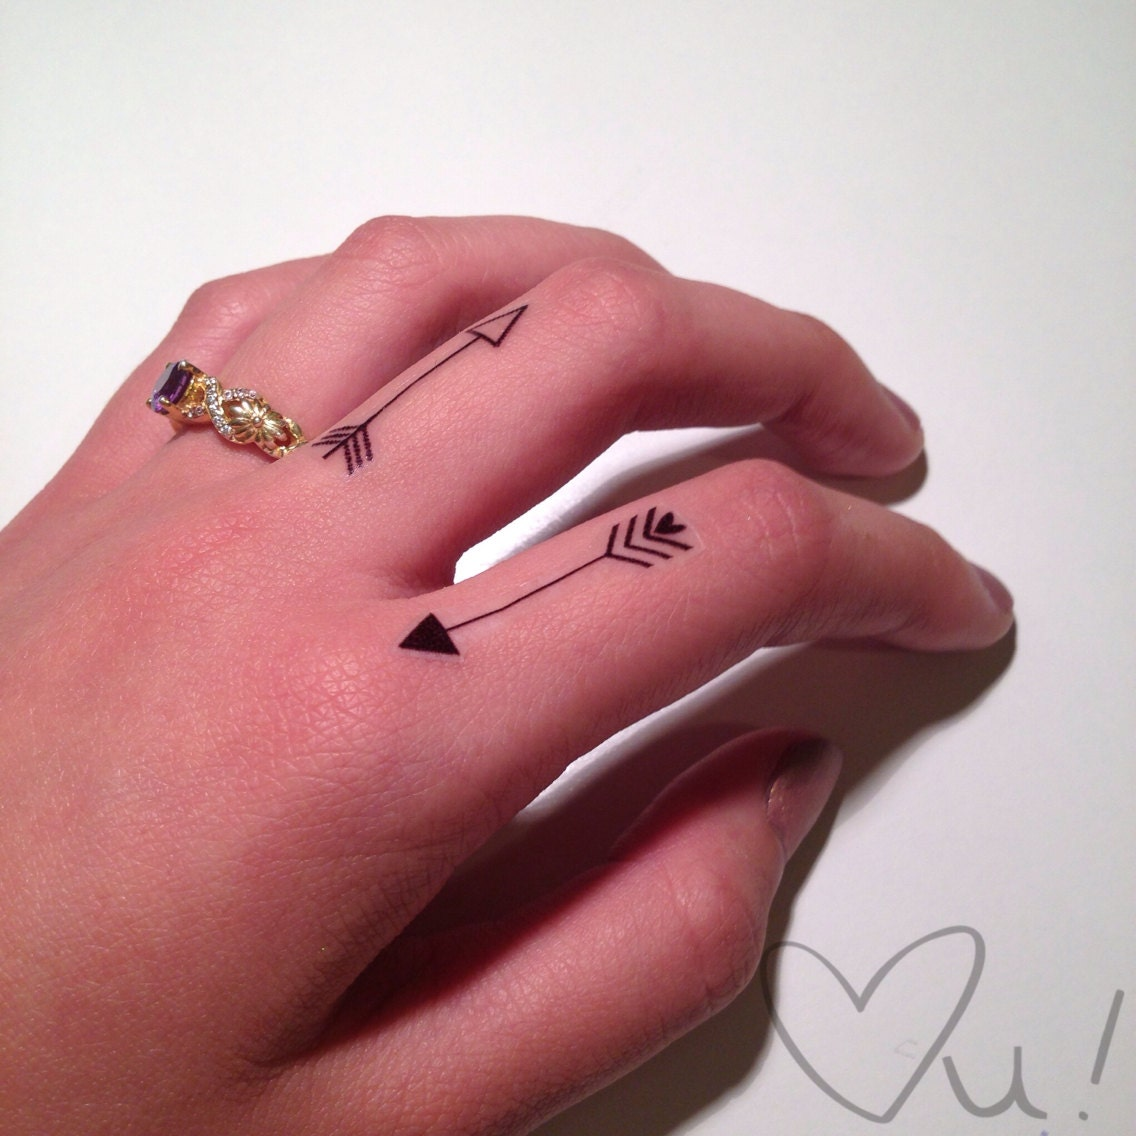 finger temporary tattoos. Black Bedroom Furniture Sets. Home Design Ideas